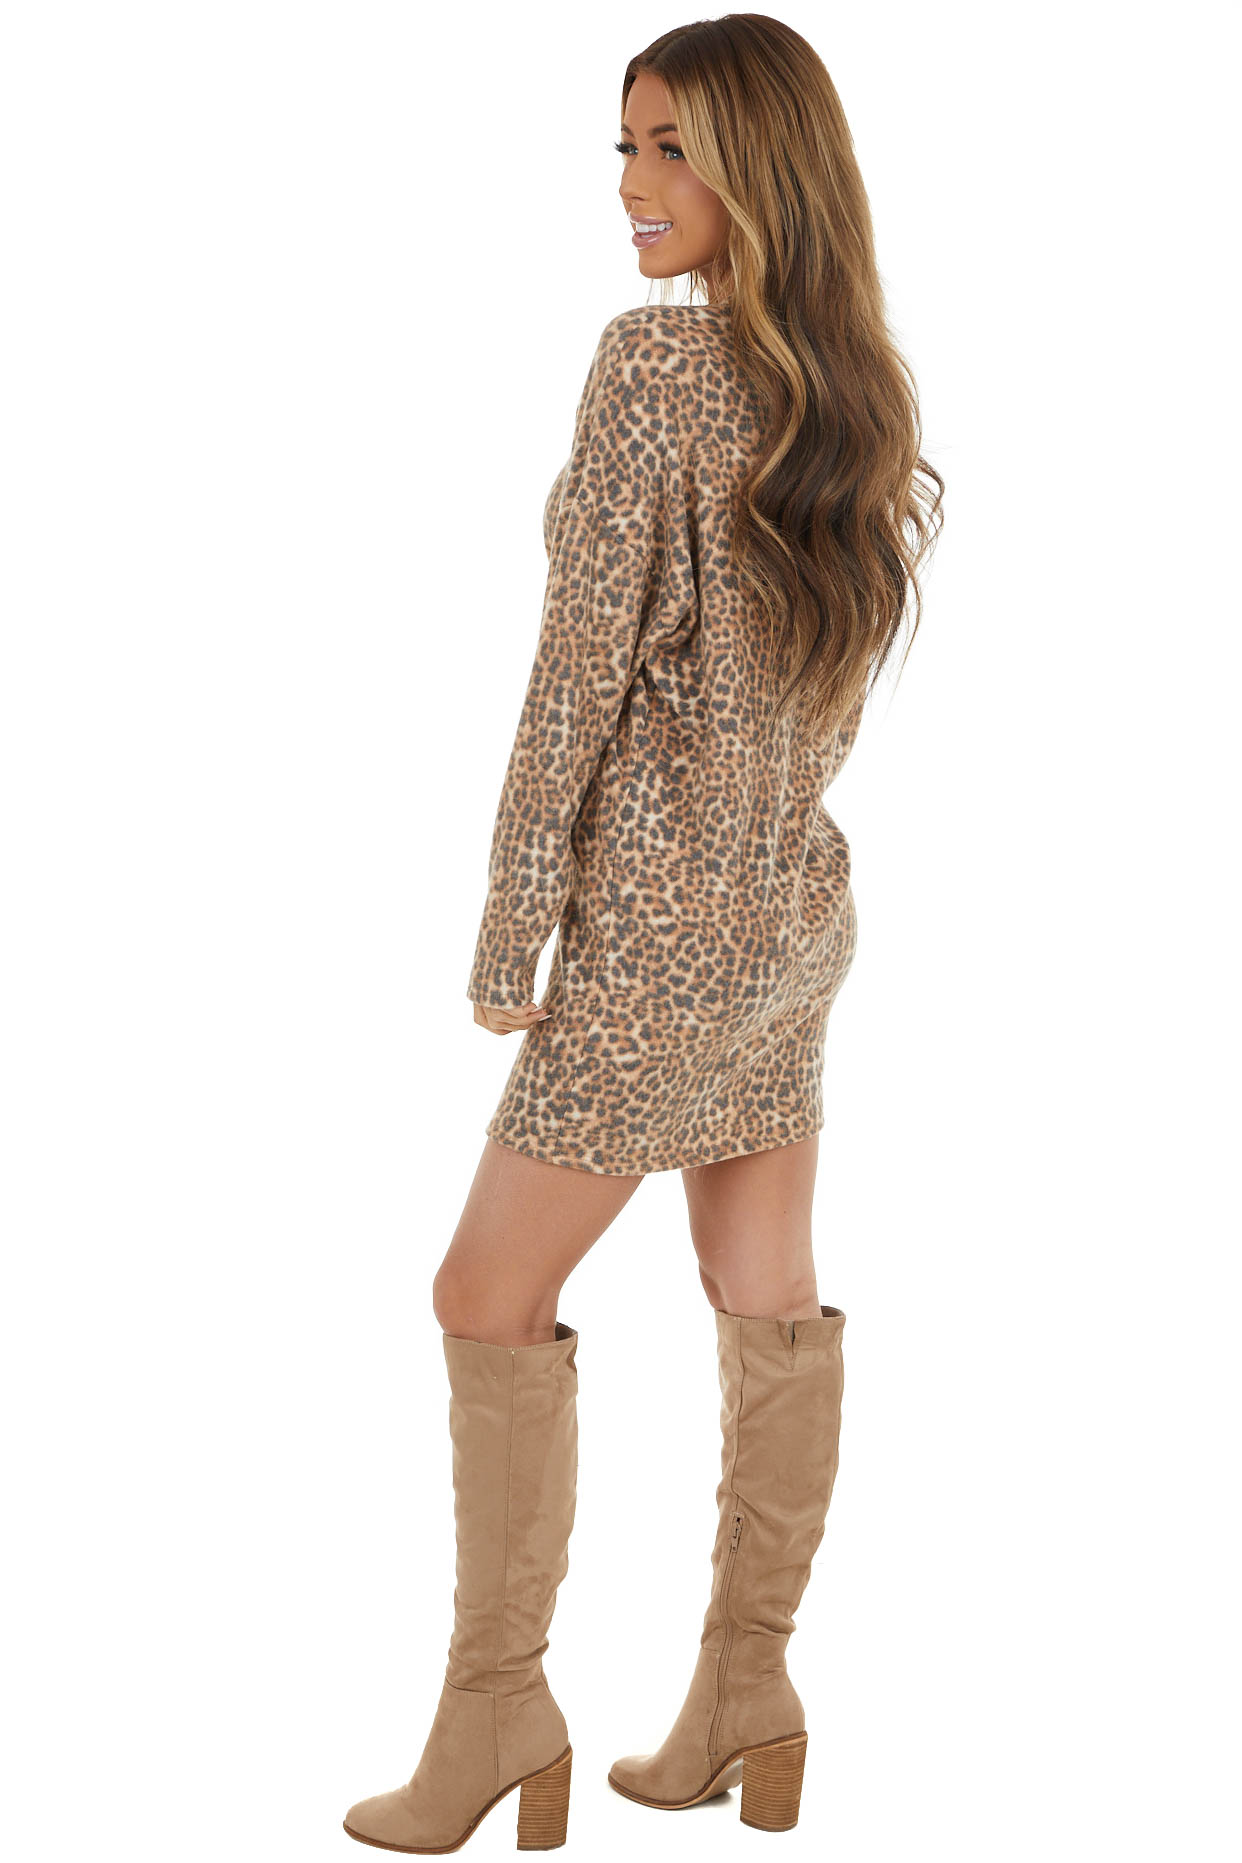 Beige Leopard Print Dress With High Neckline and Long Sleeves